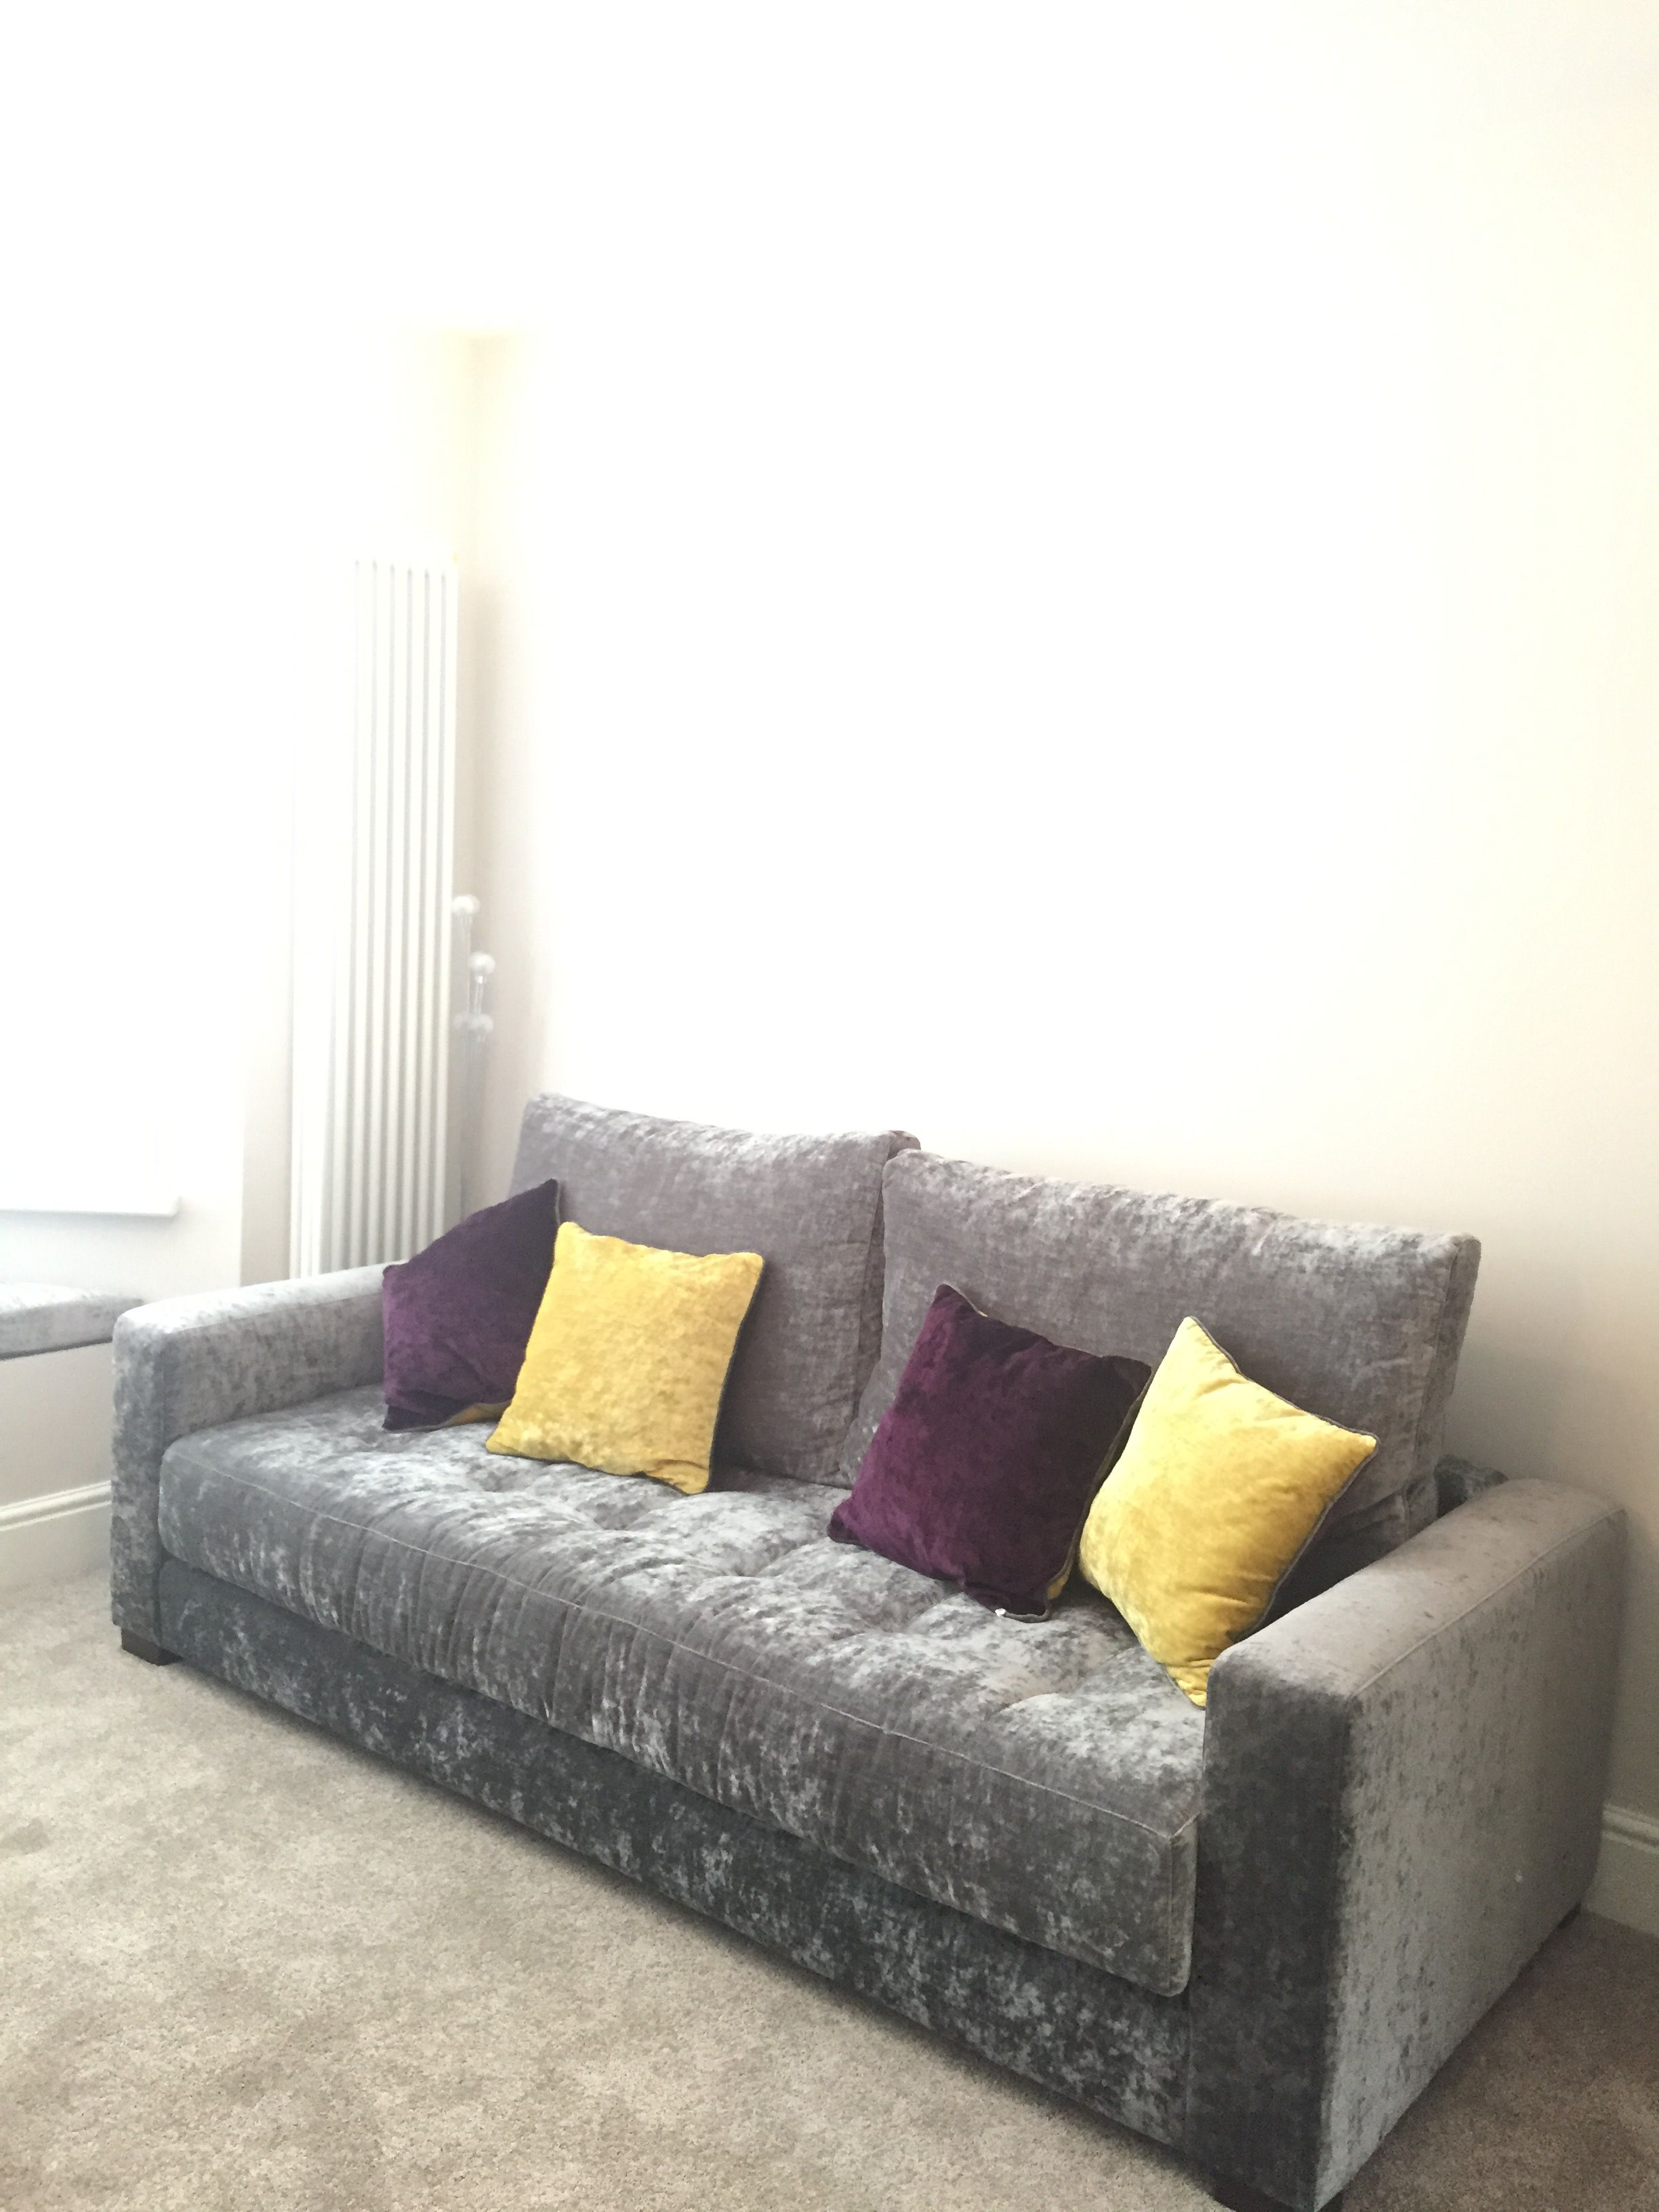 Bespoke Yecla sofa 230 cm wide with removable arms for delivery